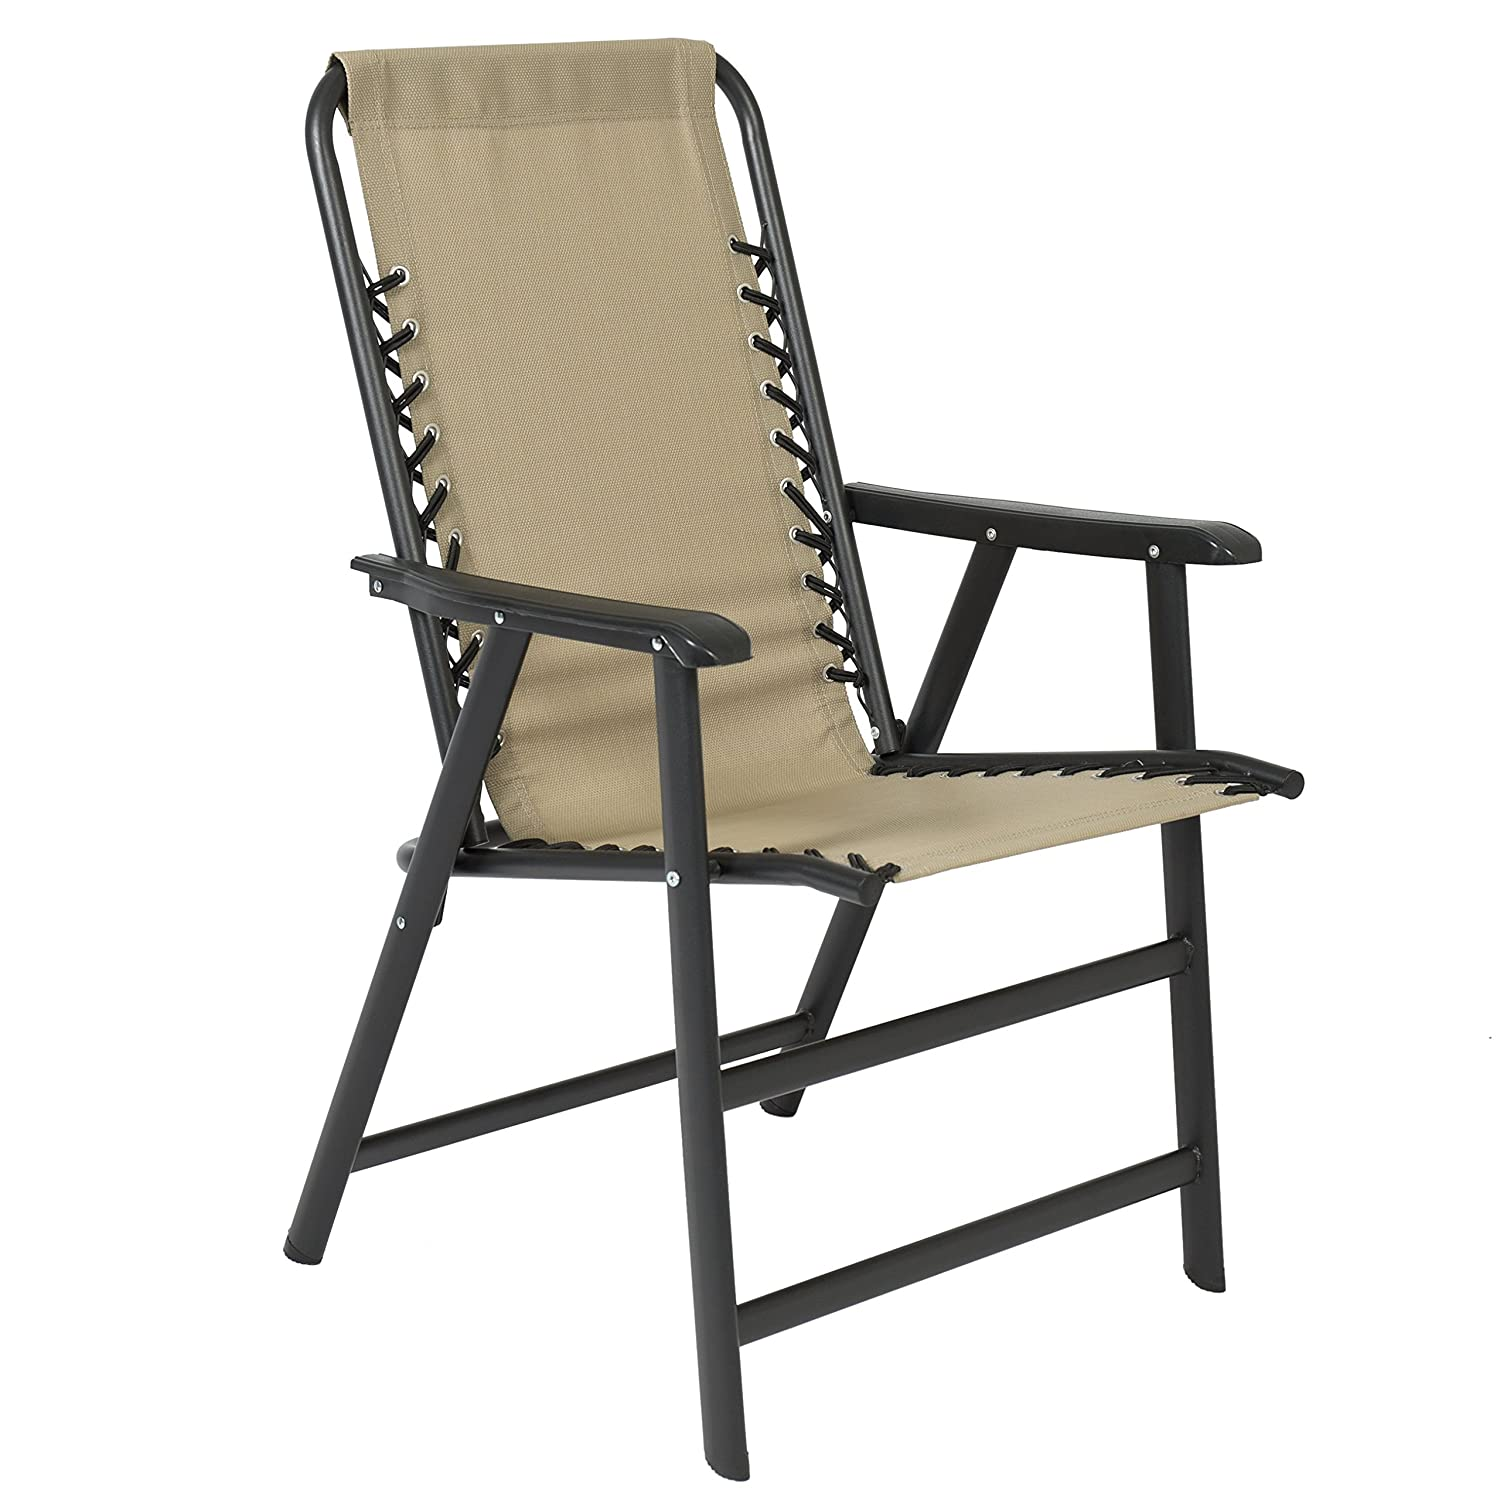 best choice products lounge suspension folding chair. Black Bedroom Furniture Sets. Home Design Ideas